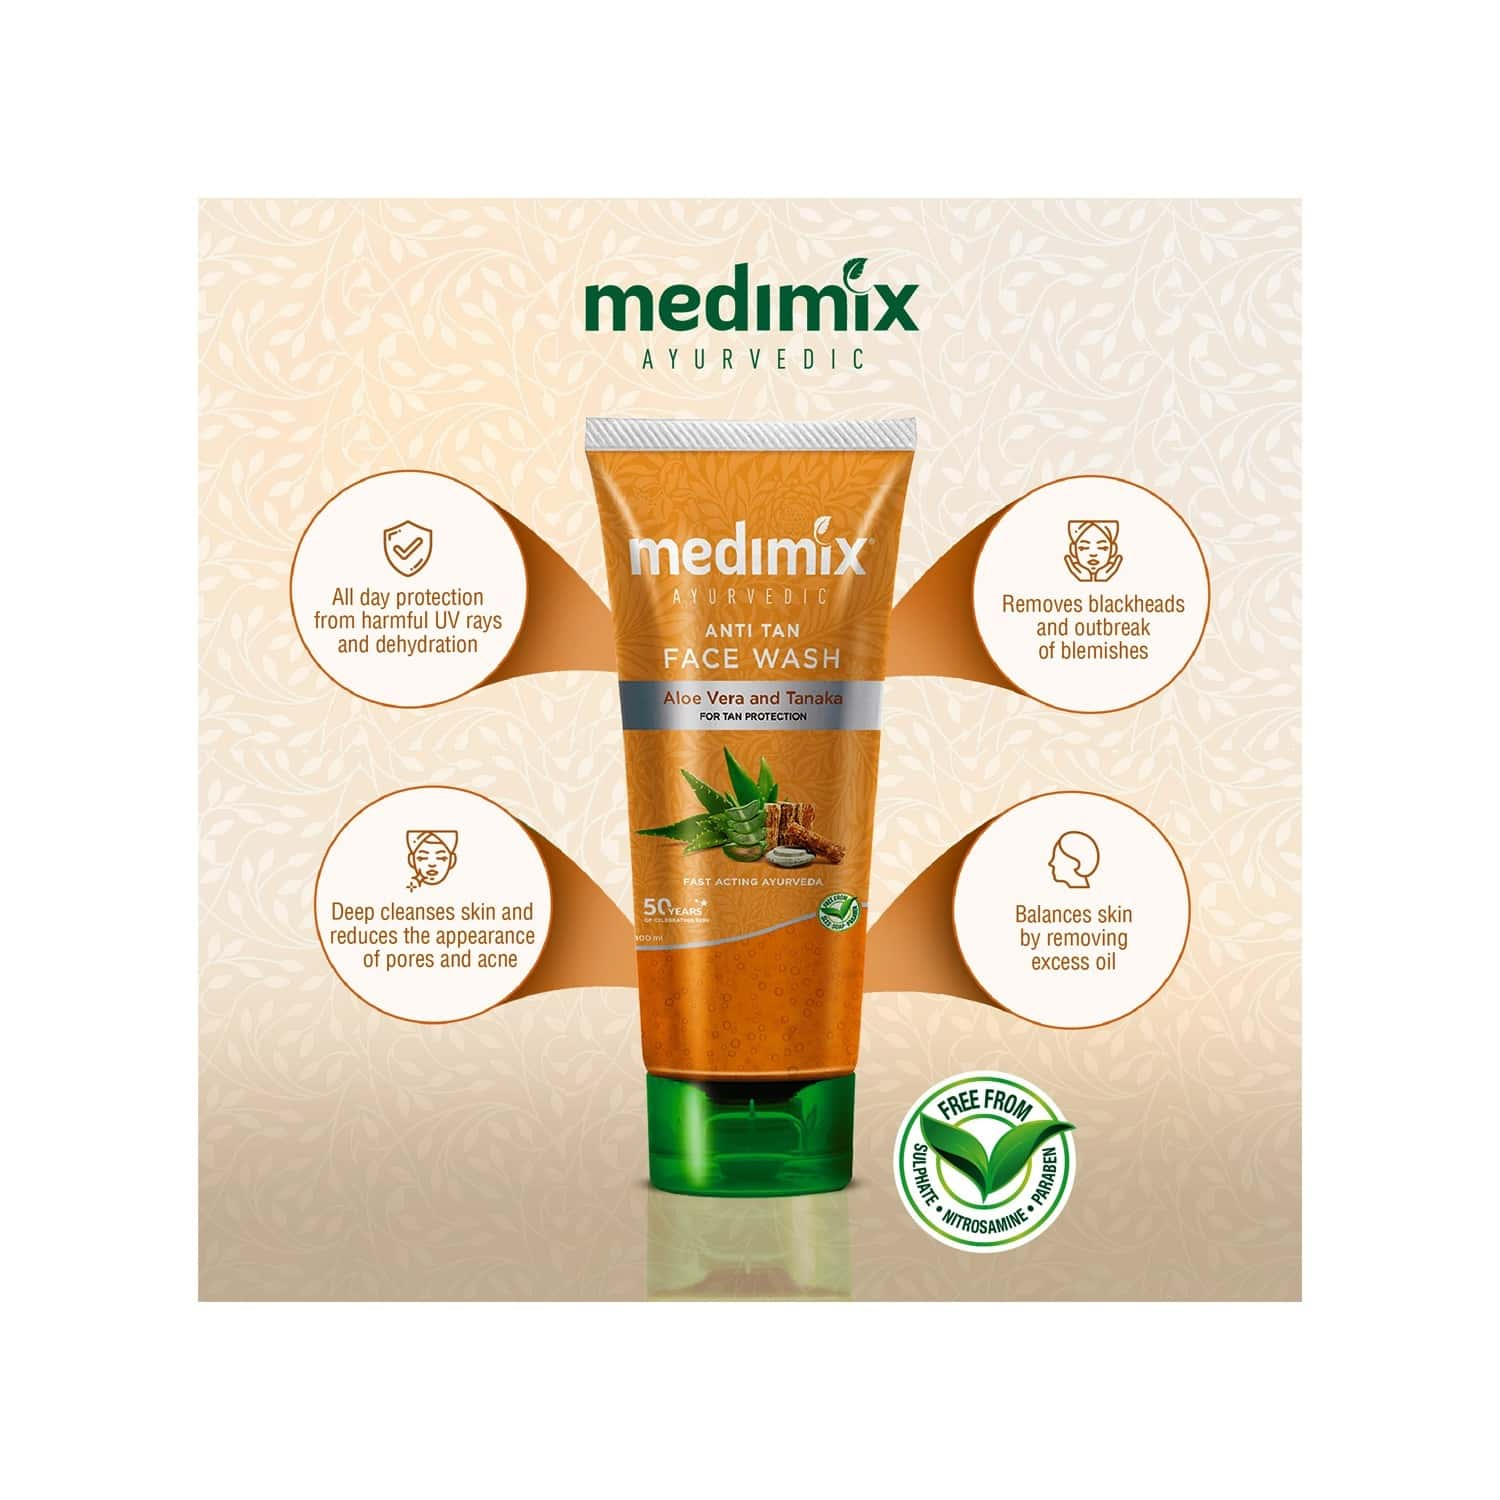 Medimix Ayurvedic Anti Tan Face Wash - 50ml